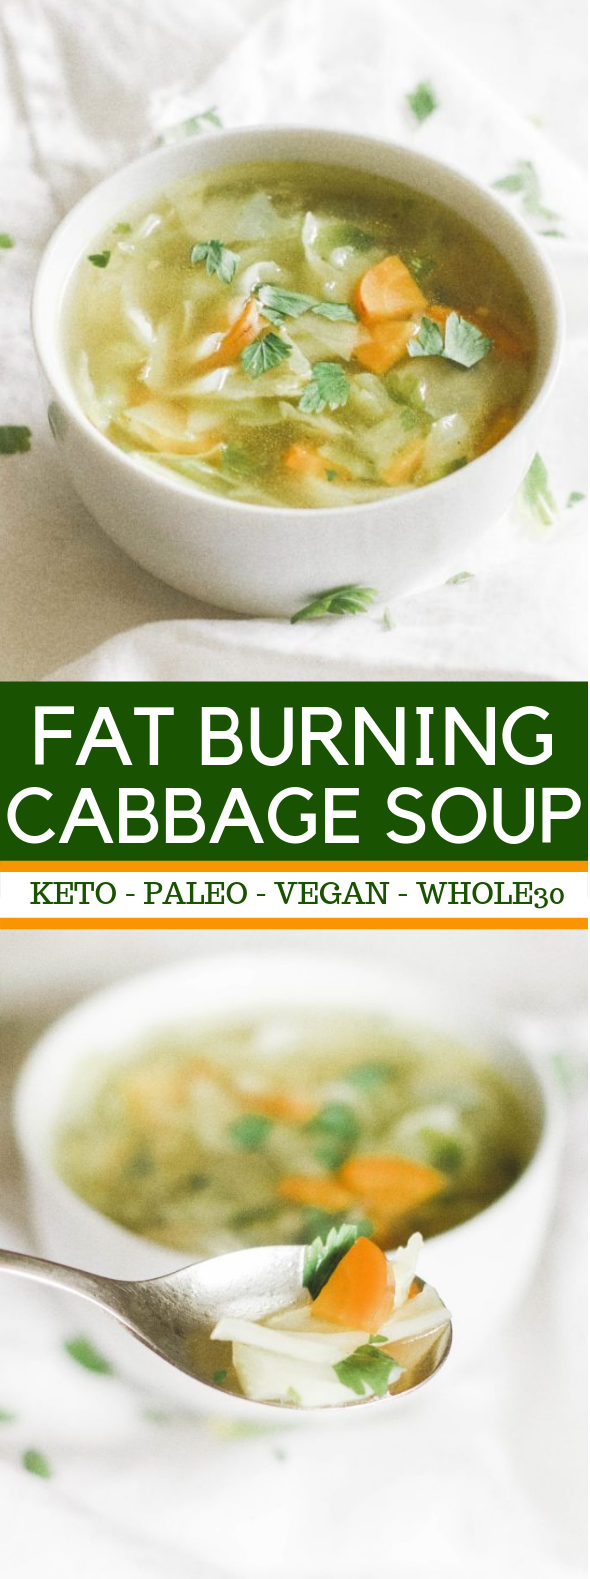 Fat Burning Cabbage Soup #keto #paleo